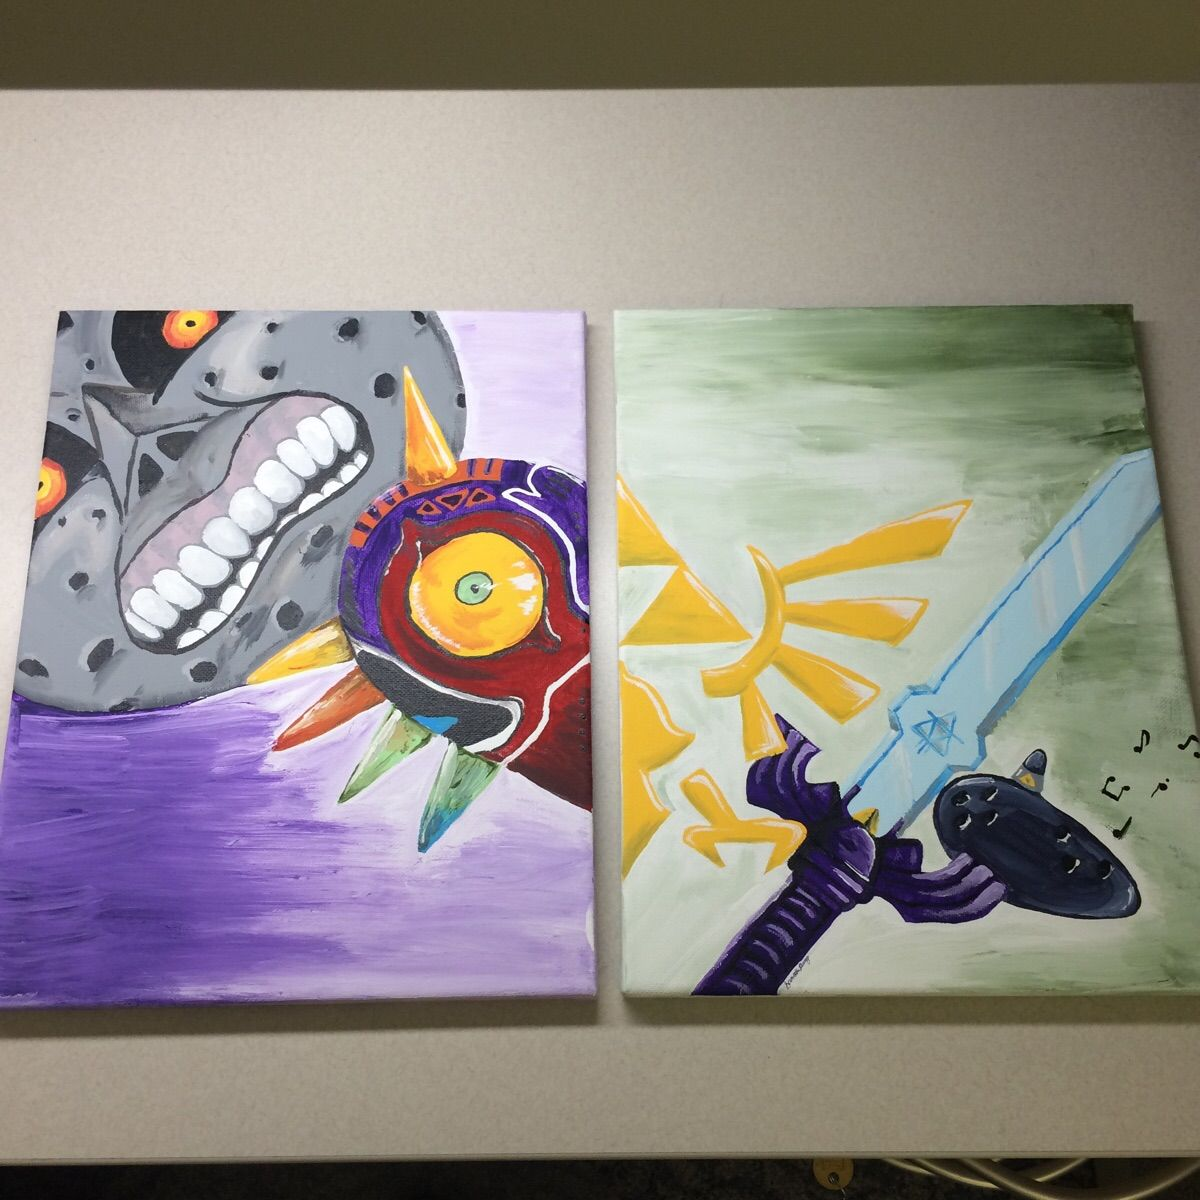 Legend of Zelda painting a friend did for me! Legend of